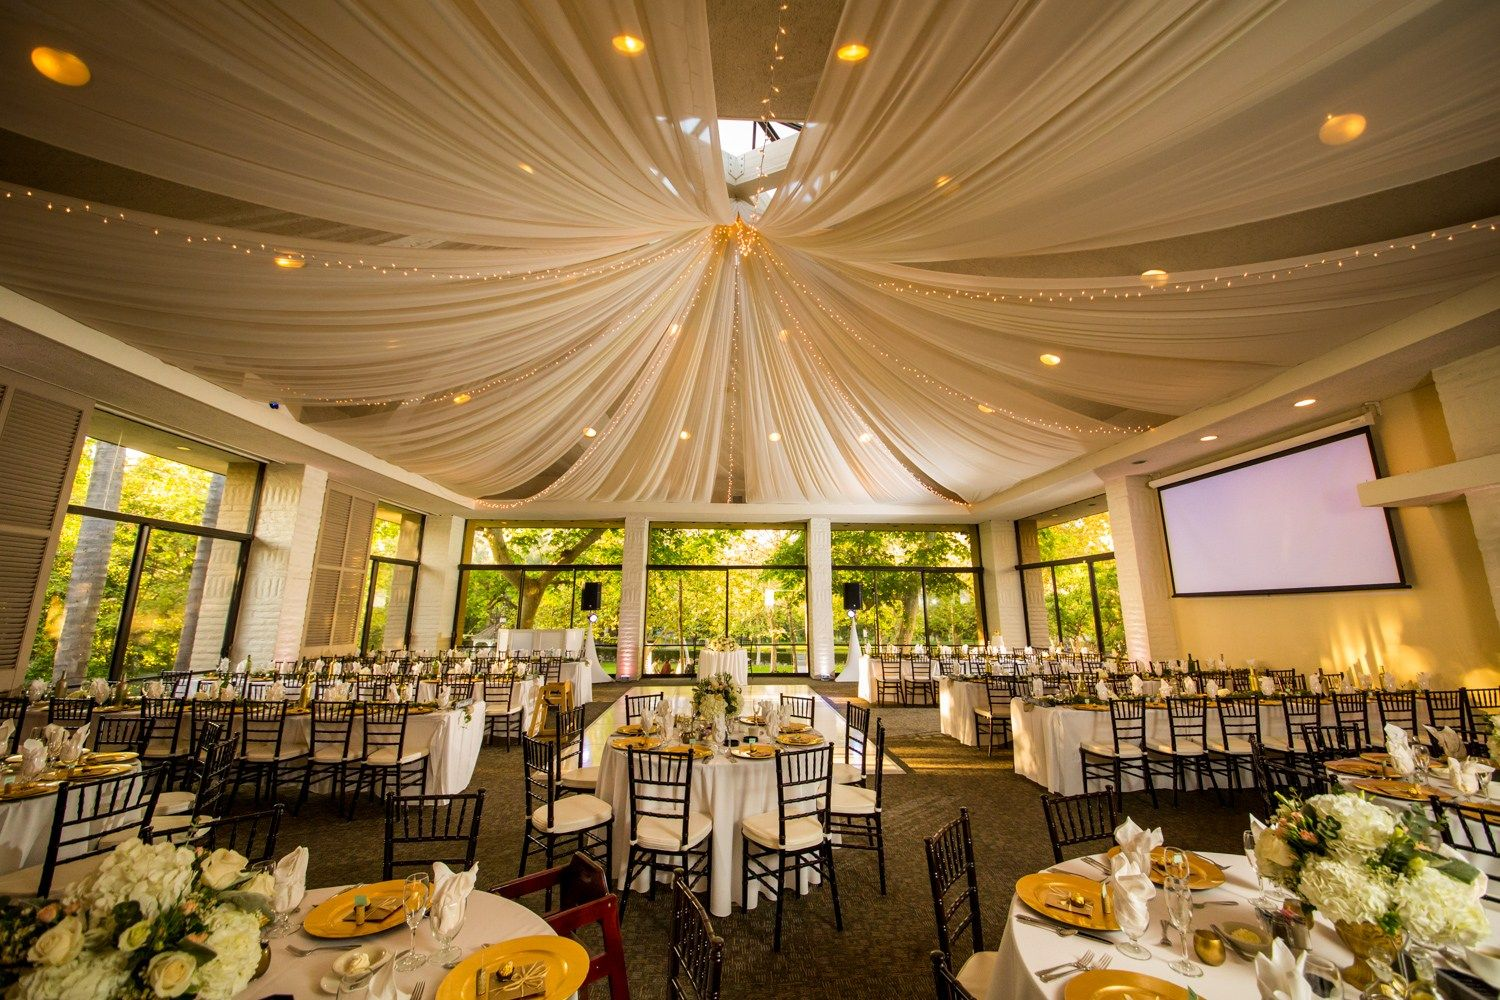 Brentwood wedding venues